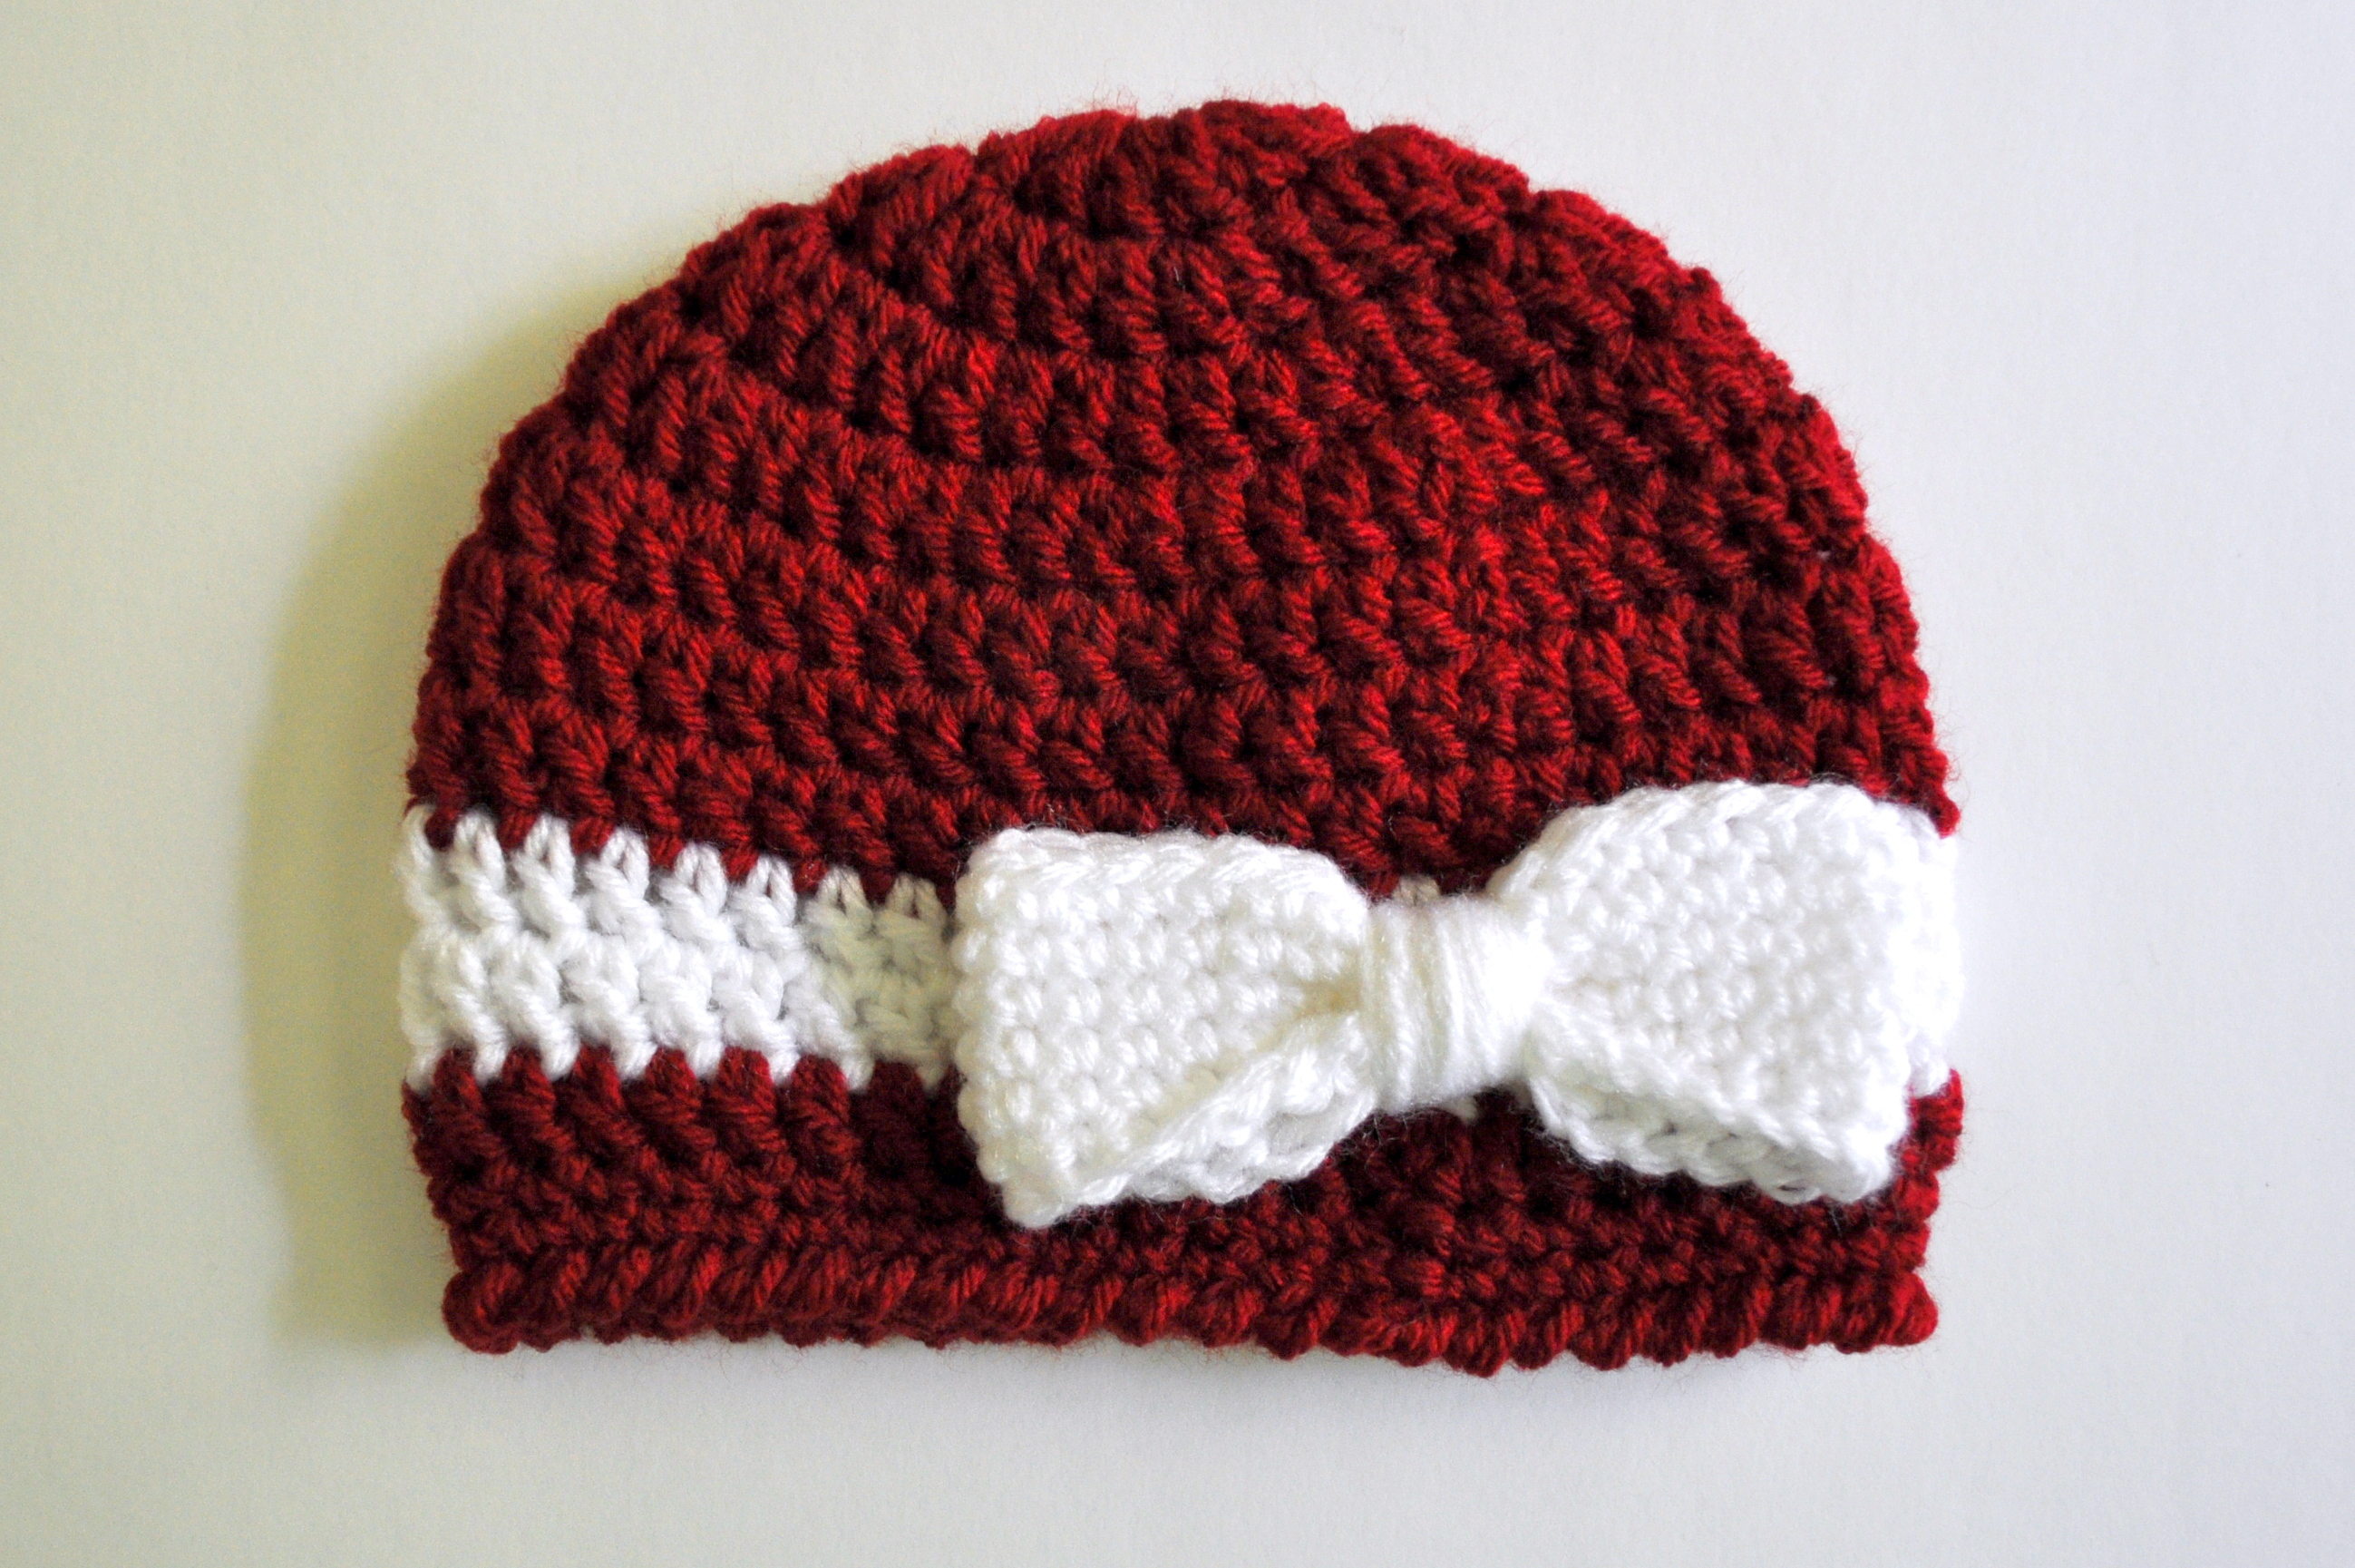 Free pattern crochet bow and ribbon baby hat classy crochet crochet ribbon and bow baby hat pattern classy crochet bankloansurffo Choice Image